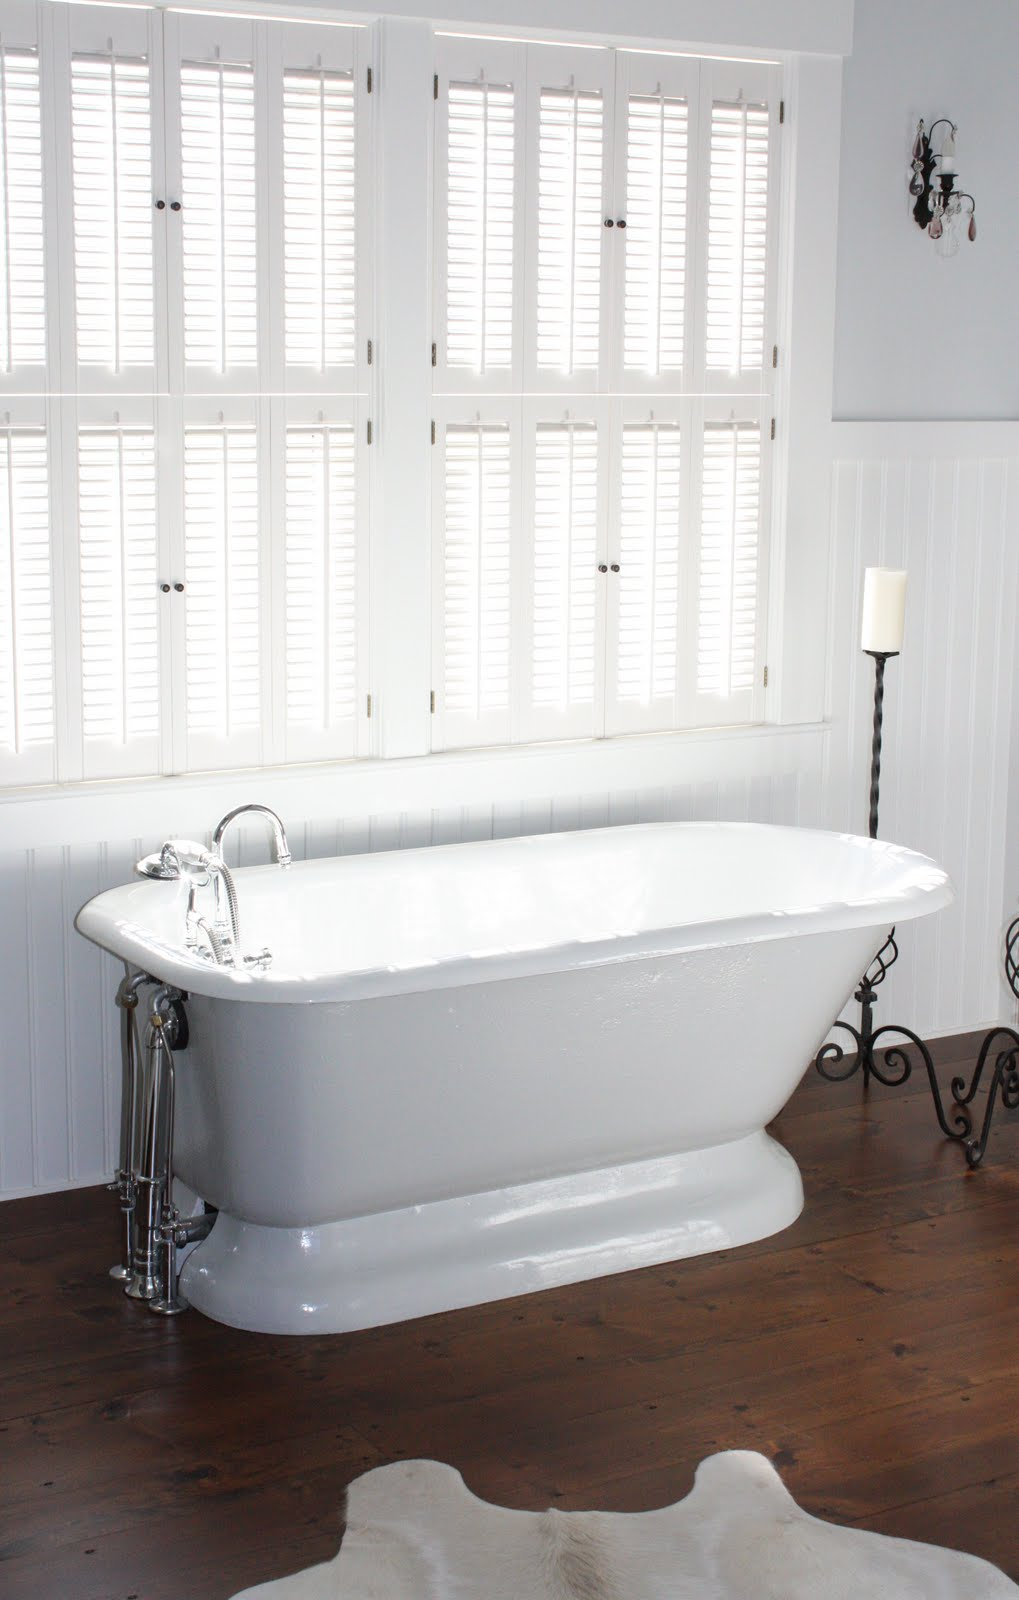 for the love of a house: the master bath: details